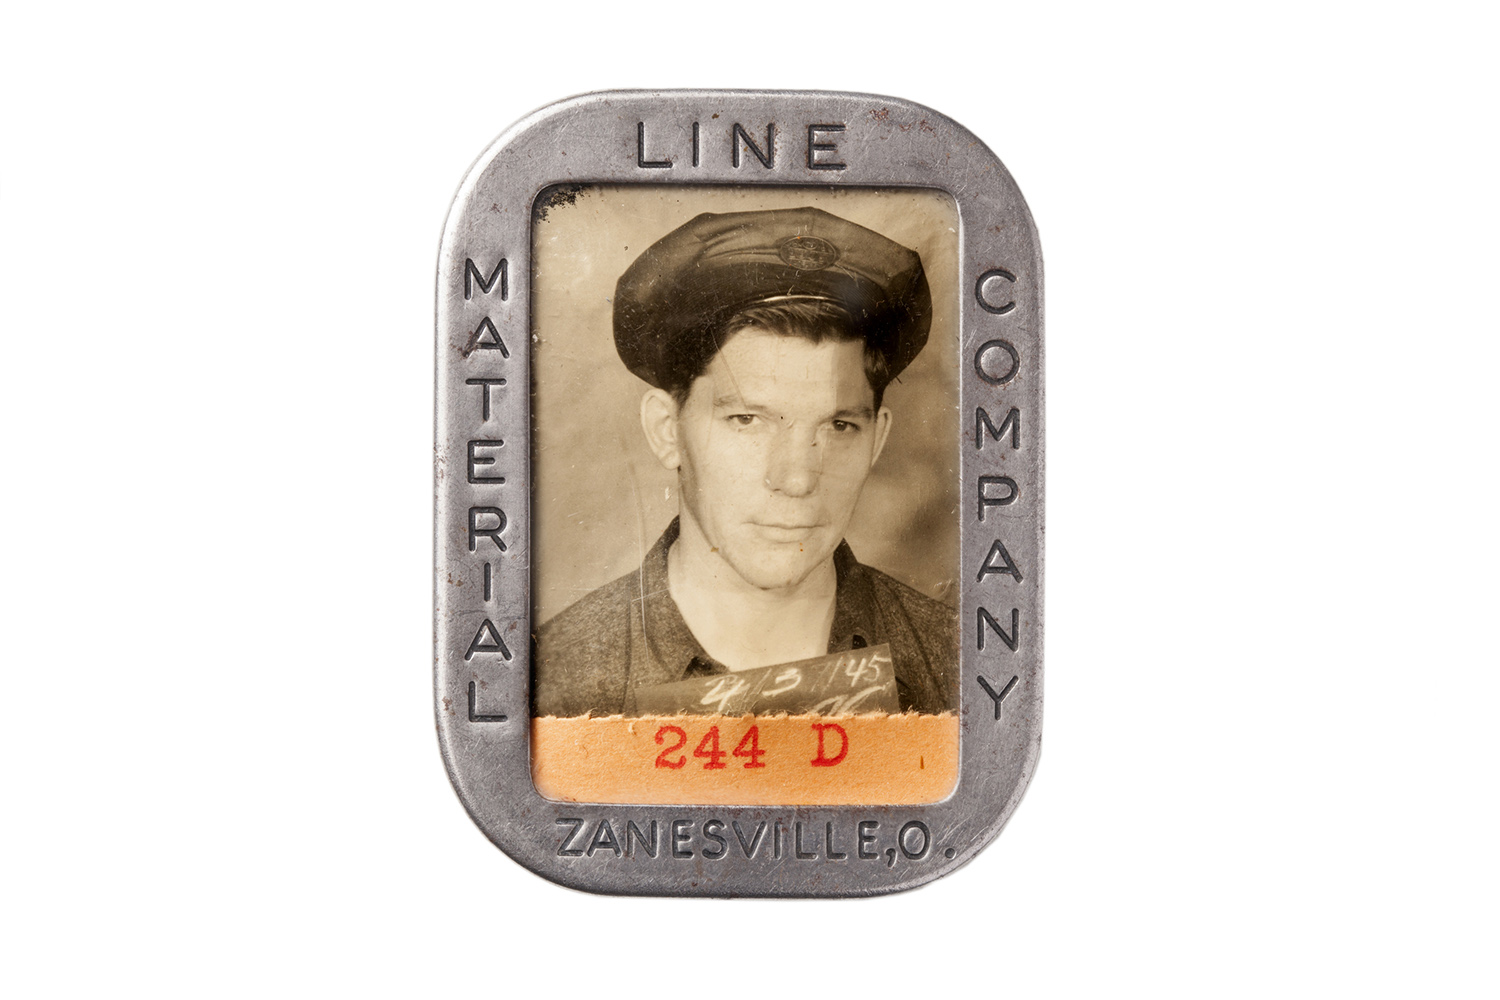 The ID badge of an employee at the Material Line Company.